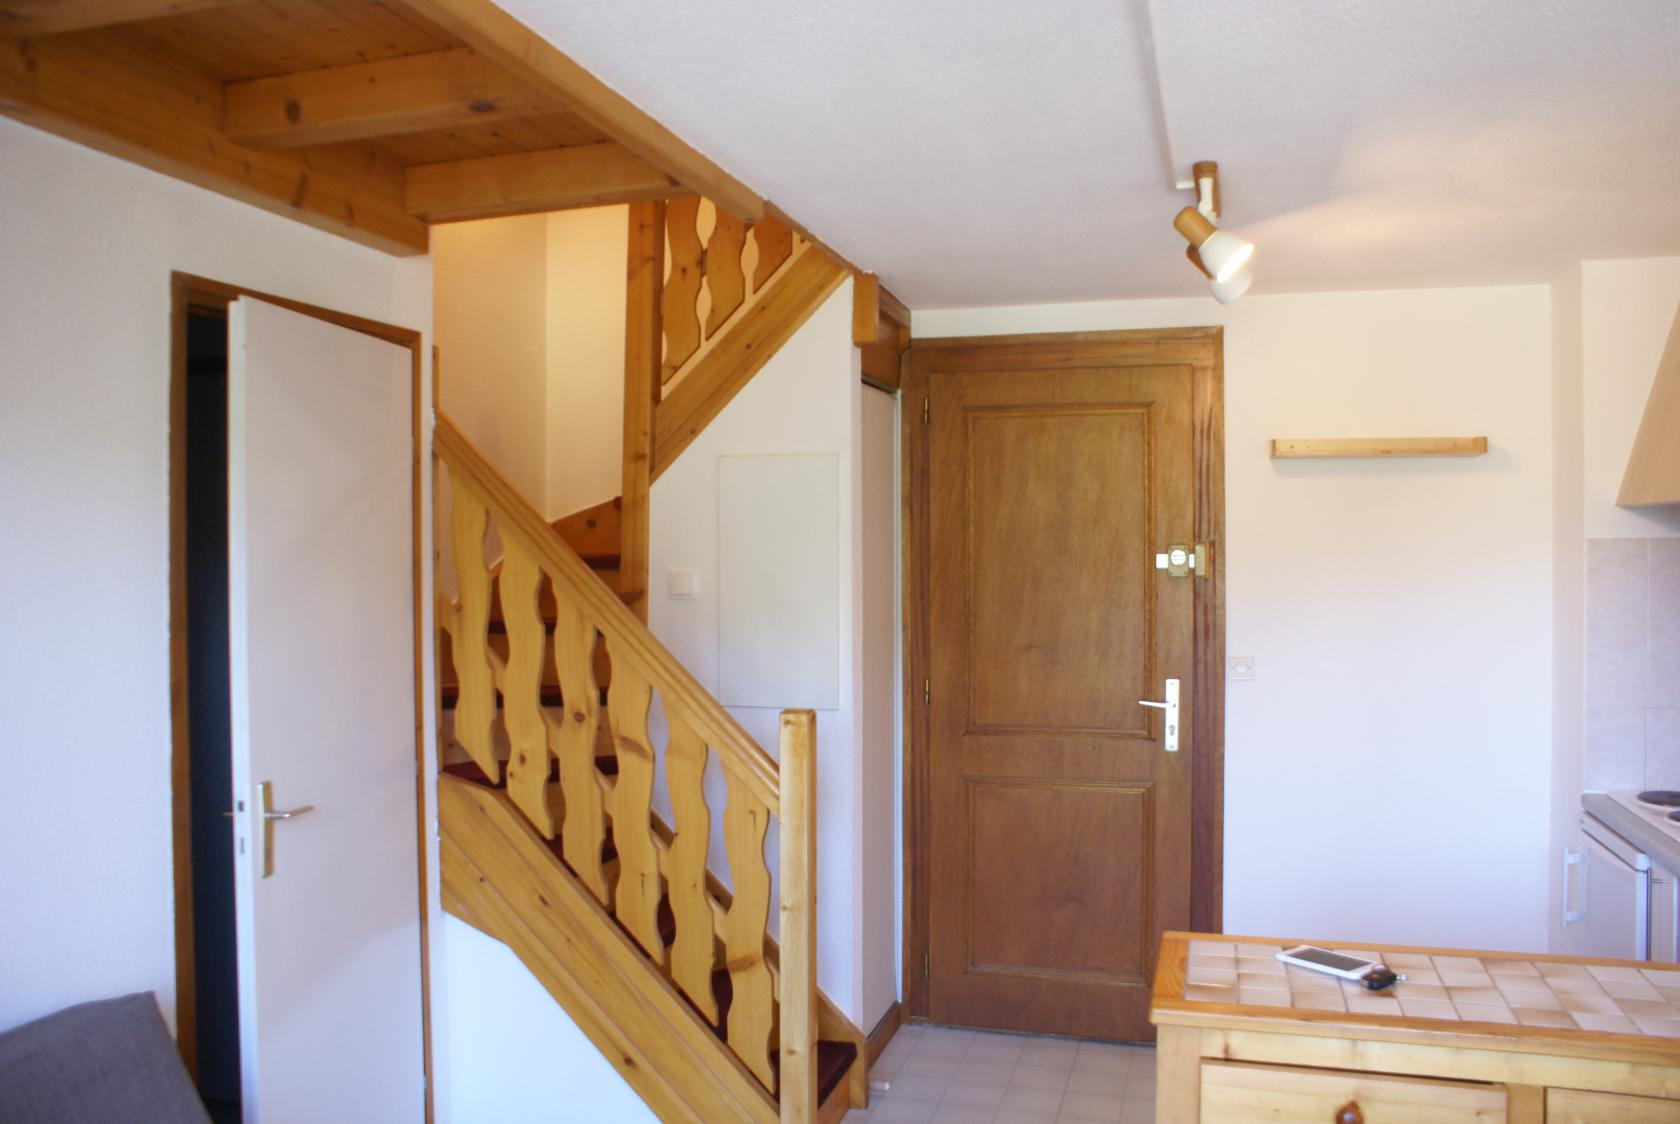 2 Bedroom Duplex in Morzine'